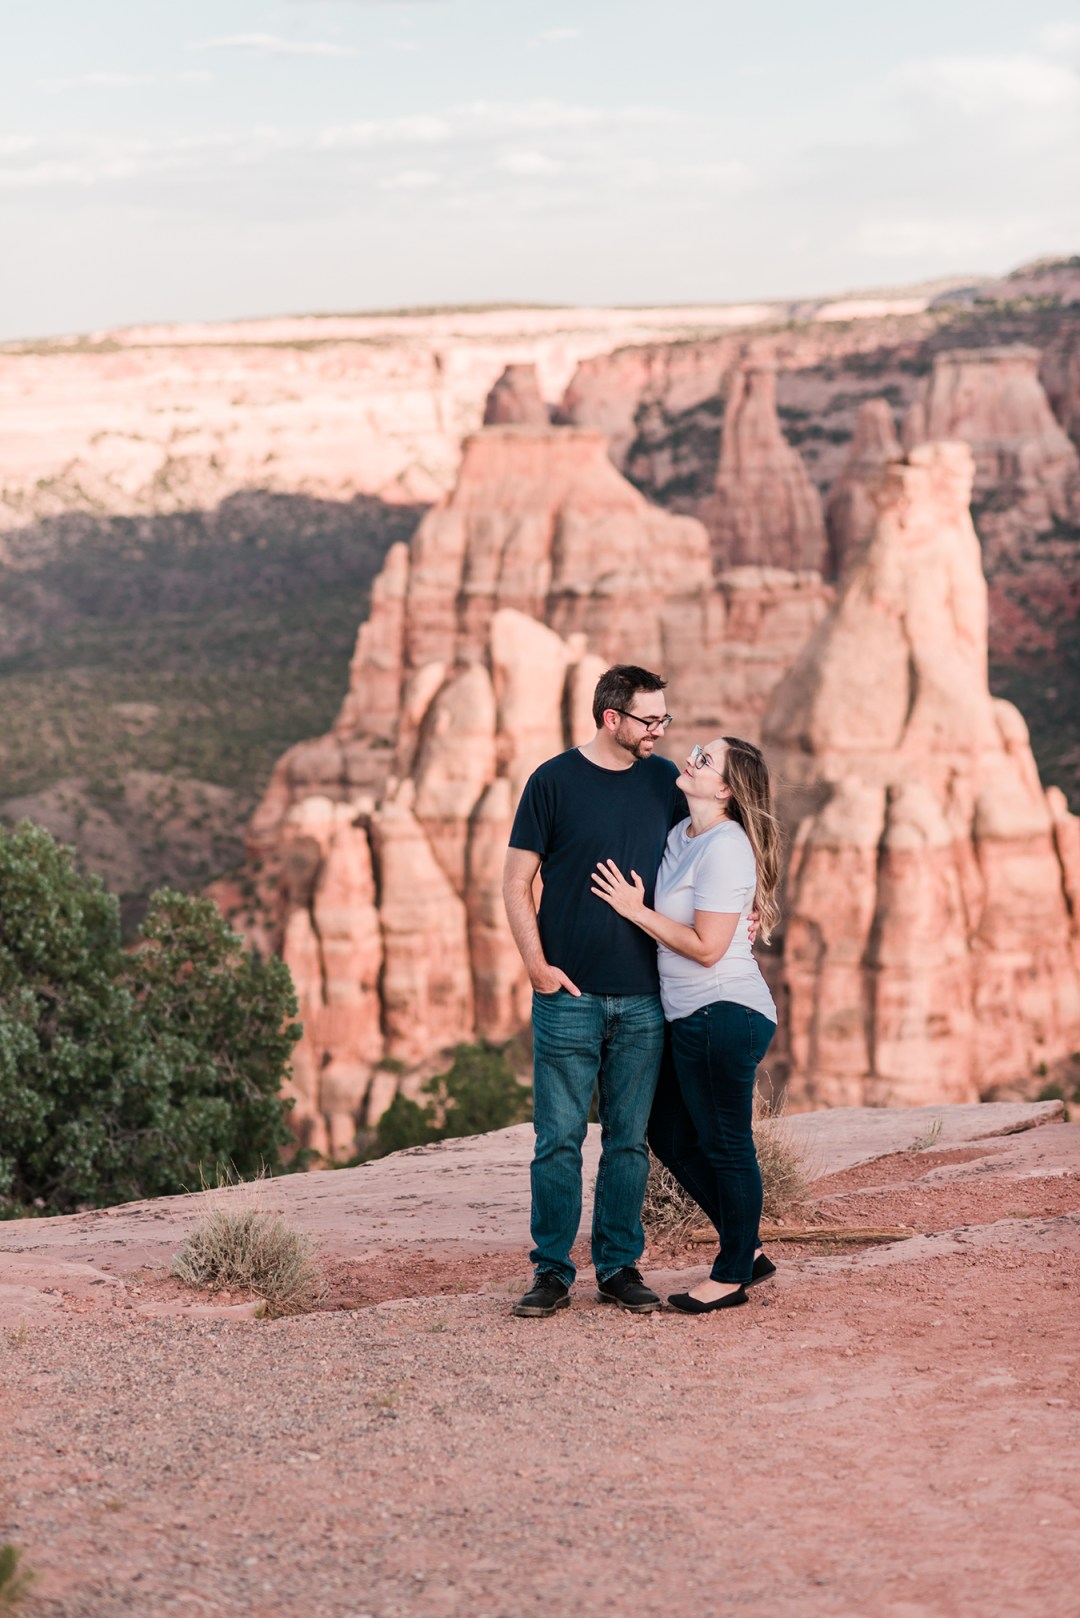 Laura & Joe | Engagement Photos on the Colorado National Monument